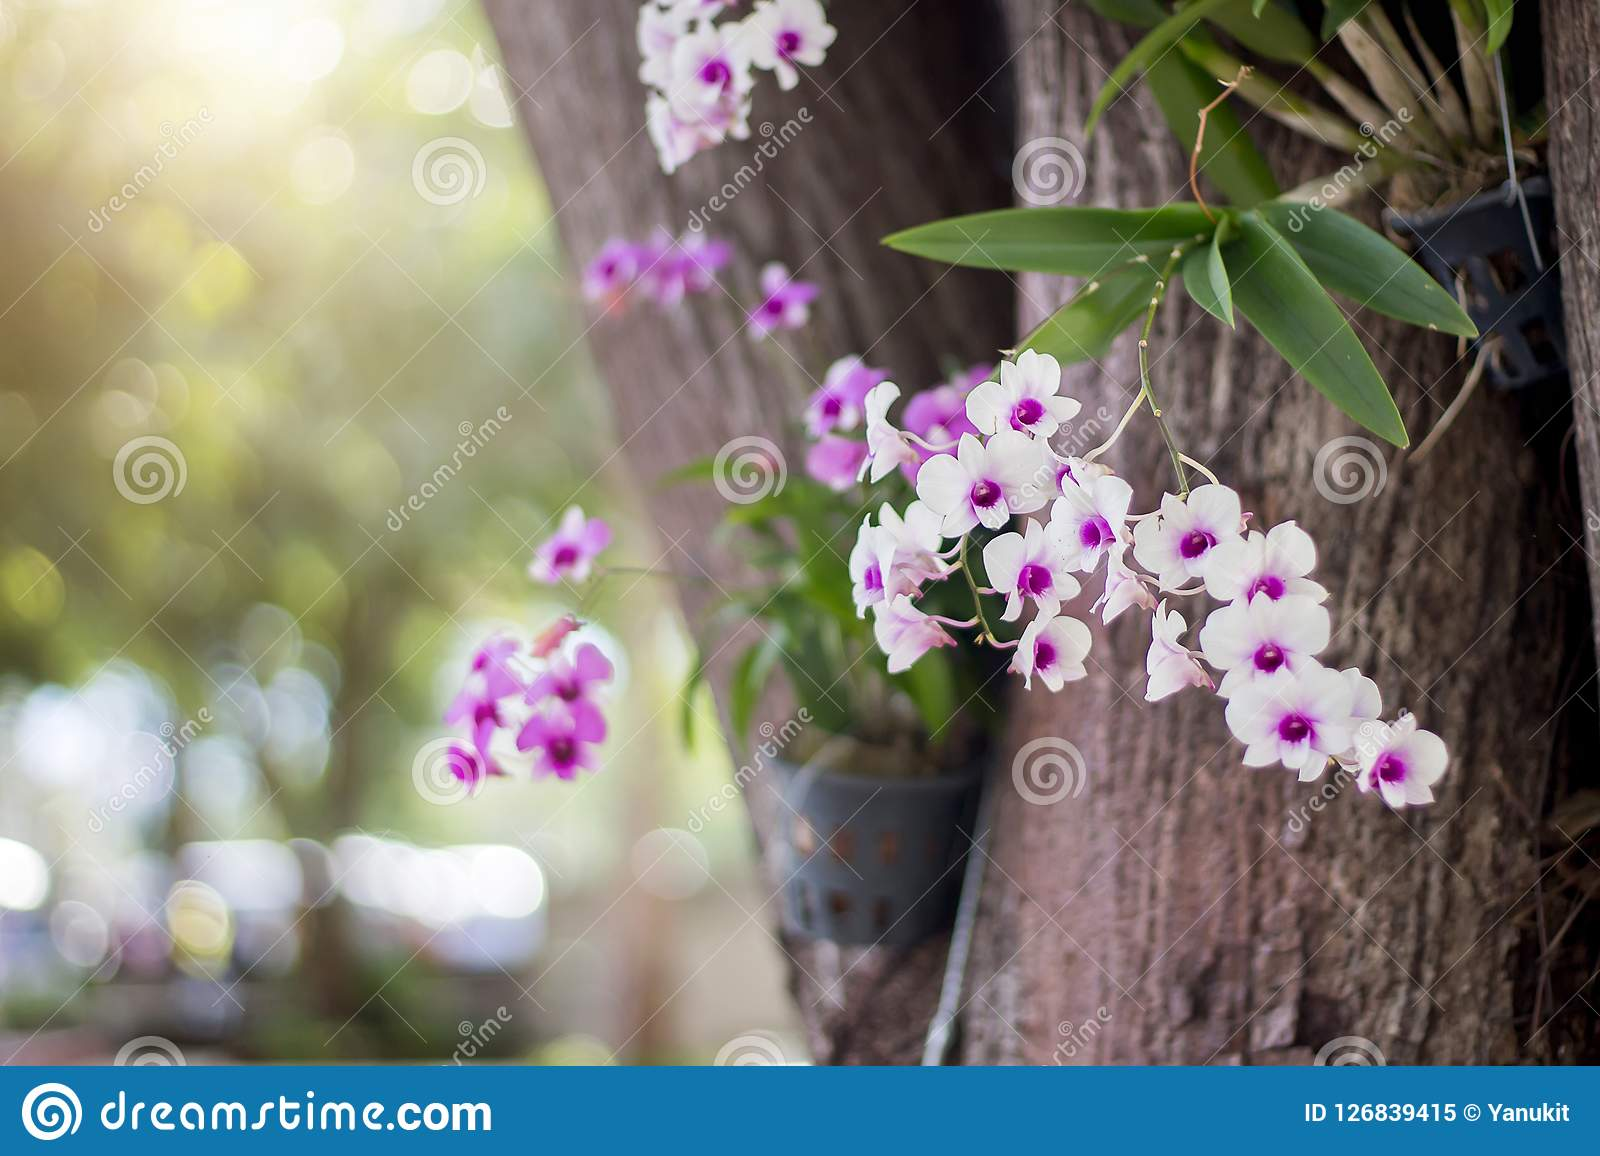 White And Purple Flower On Tree Stock Image Image Of Floral Print